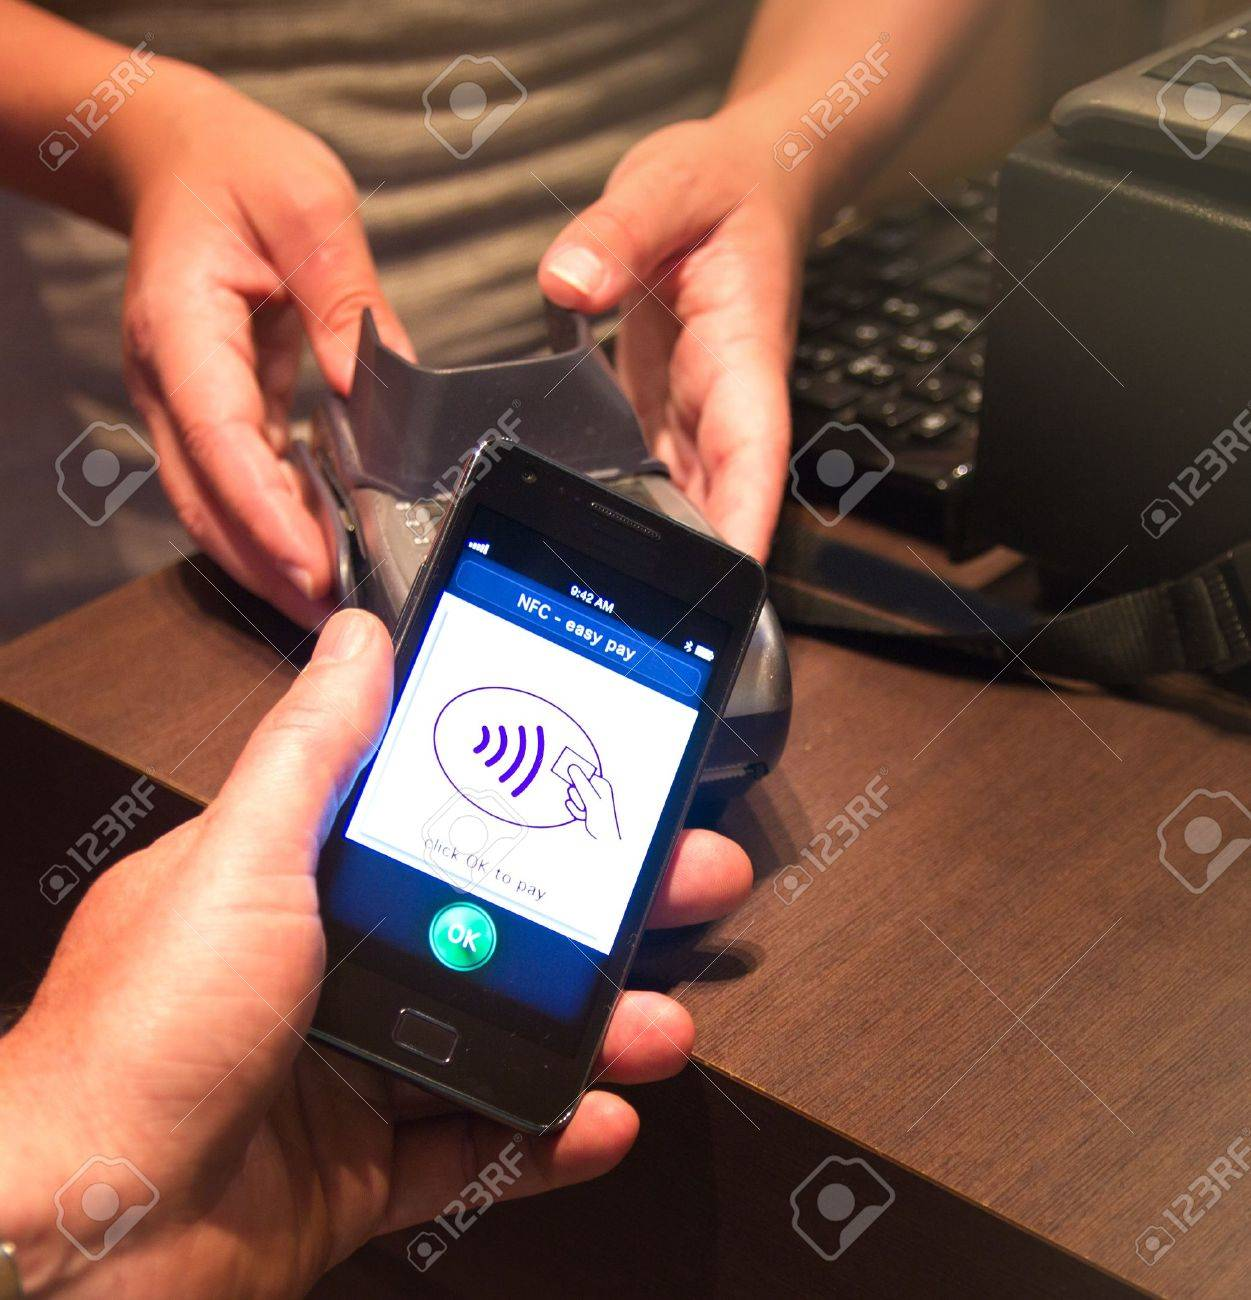 The new way to pay  NFC payments via mobile phone, etc Stock Photo - 13491999